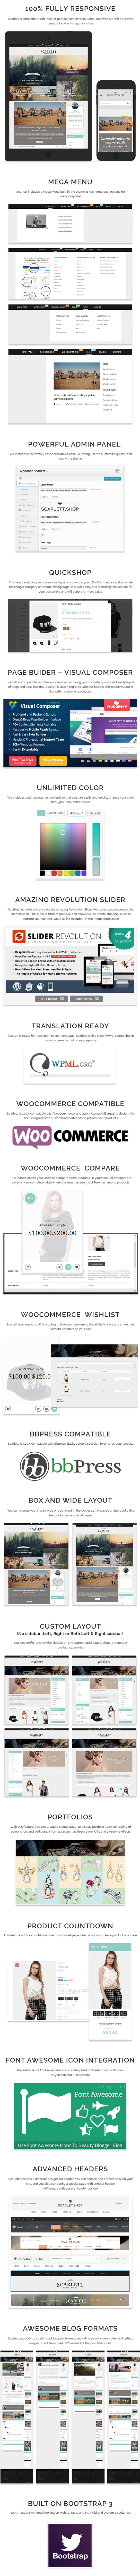 Scarlett - WordPress Blog & Ecommerce Theme